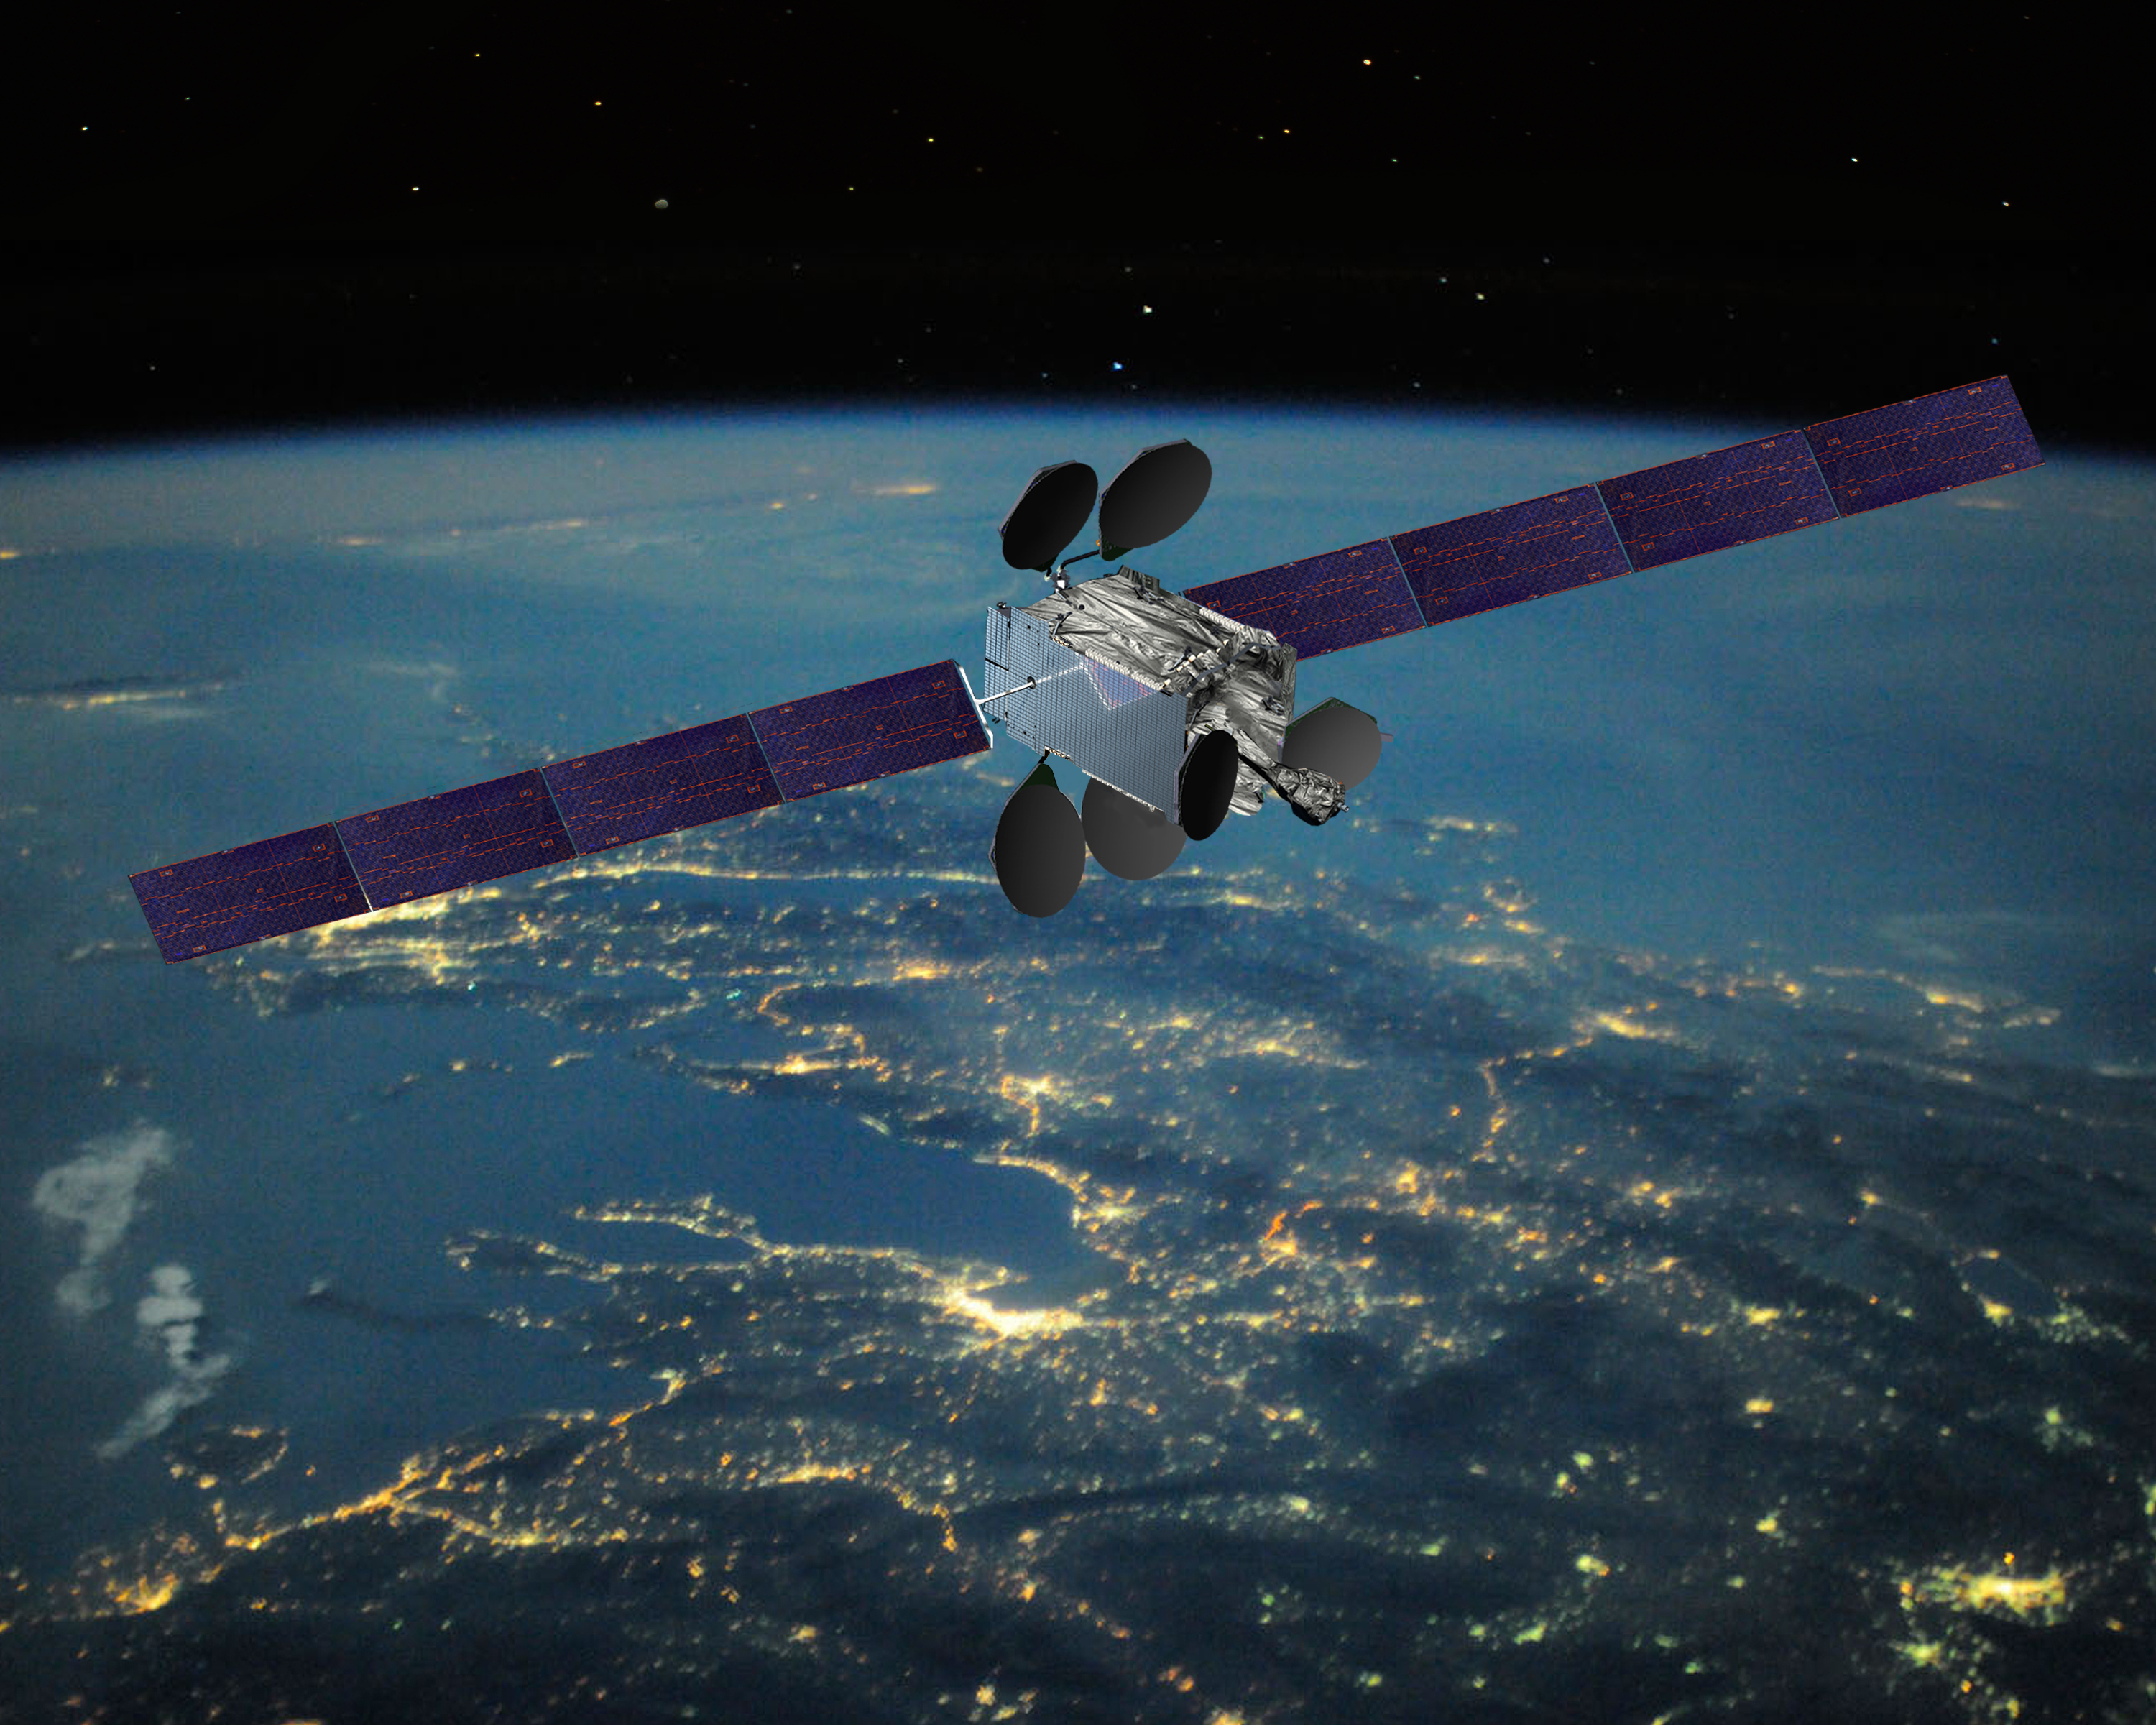 An artist's rendering of Intelsat's Epic class satellite, coming to the skies in 2015 to bring more bandwidth everywhere.